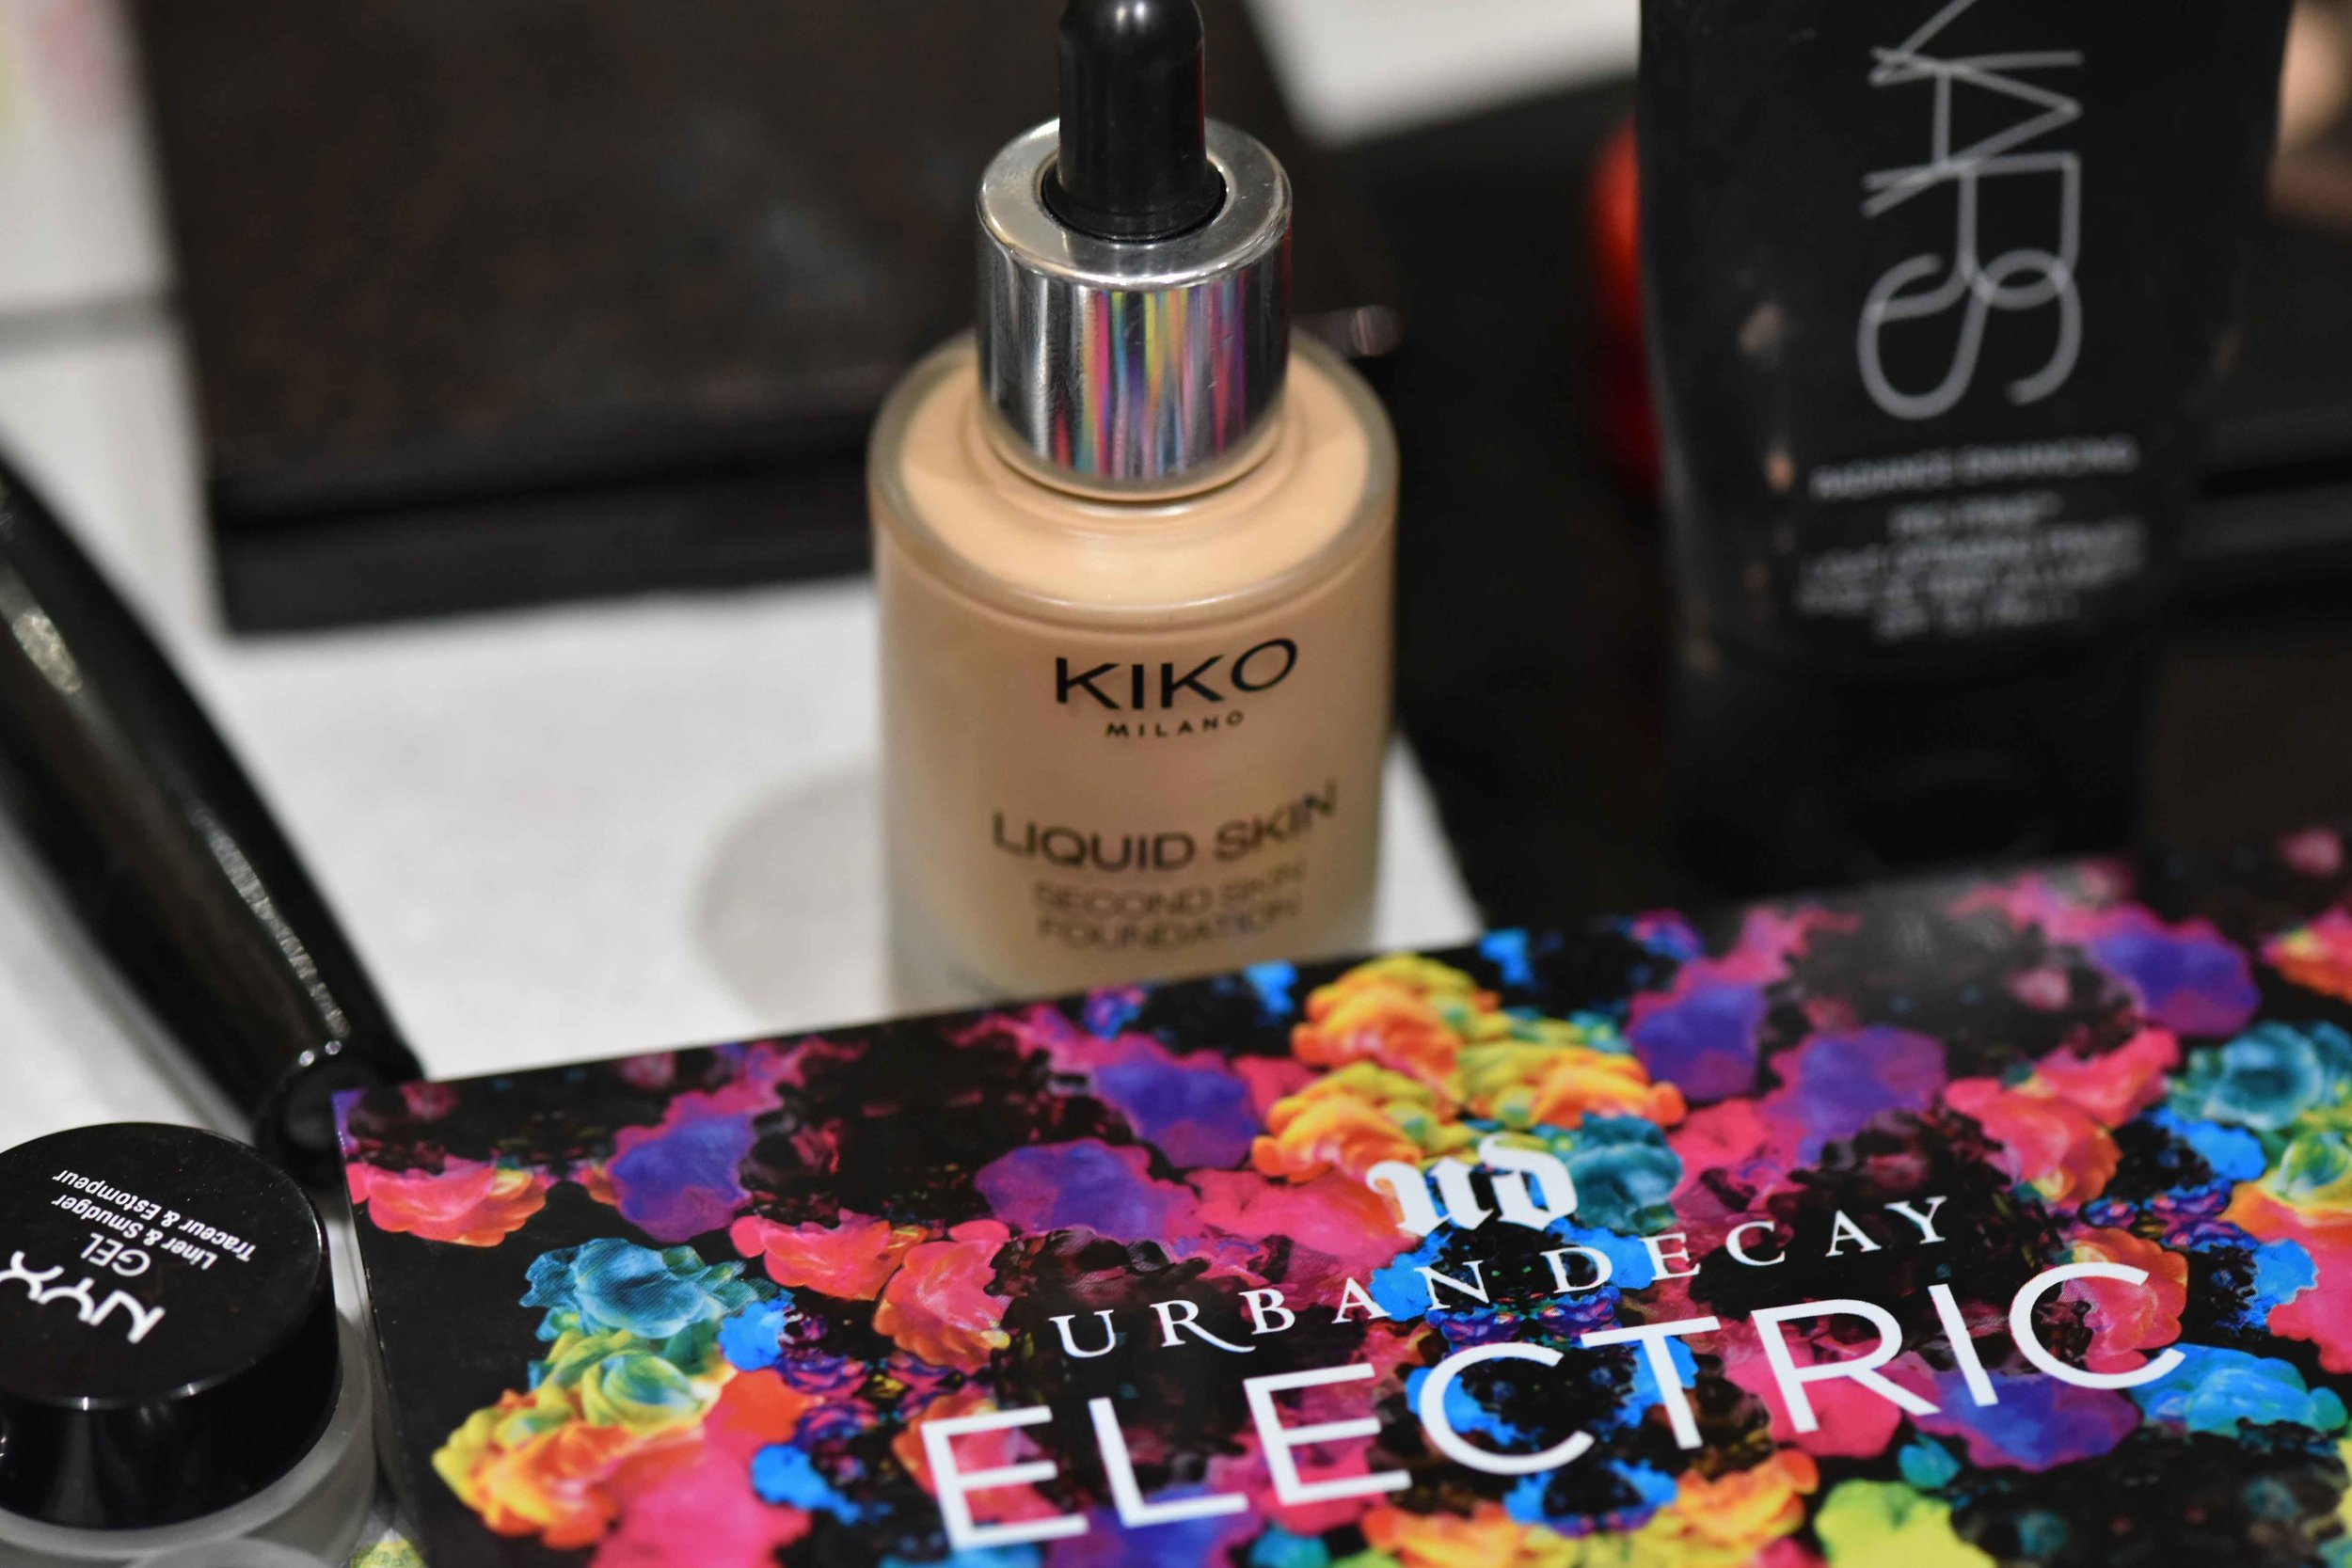 Kiko liquid foundation, Urban Decay eye shadow palette. Image©sourcingstyle.com